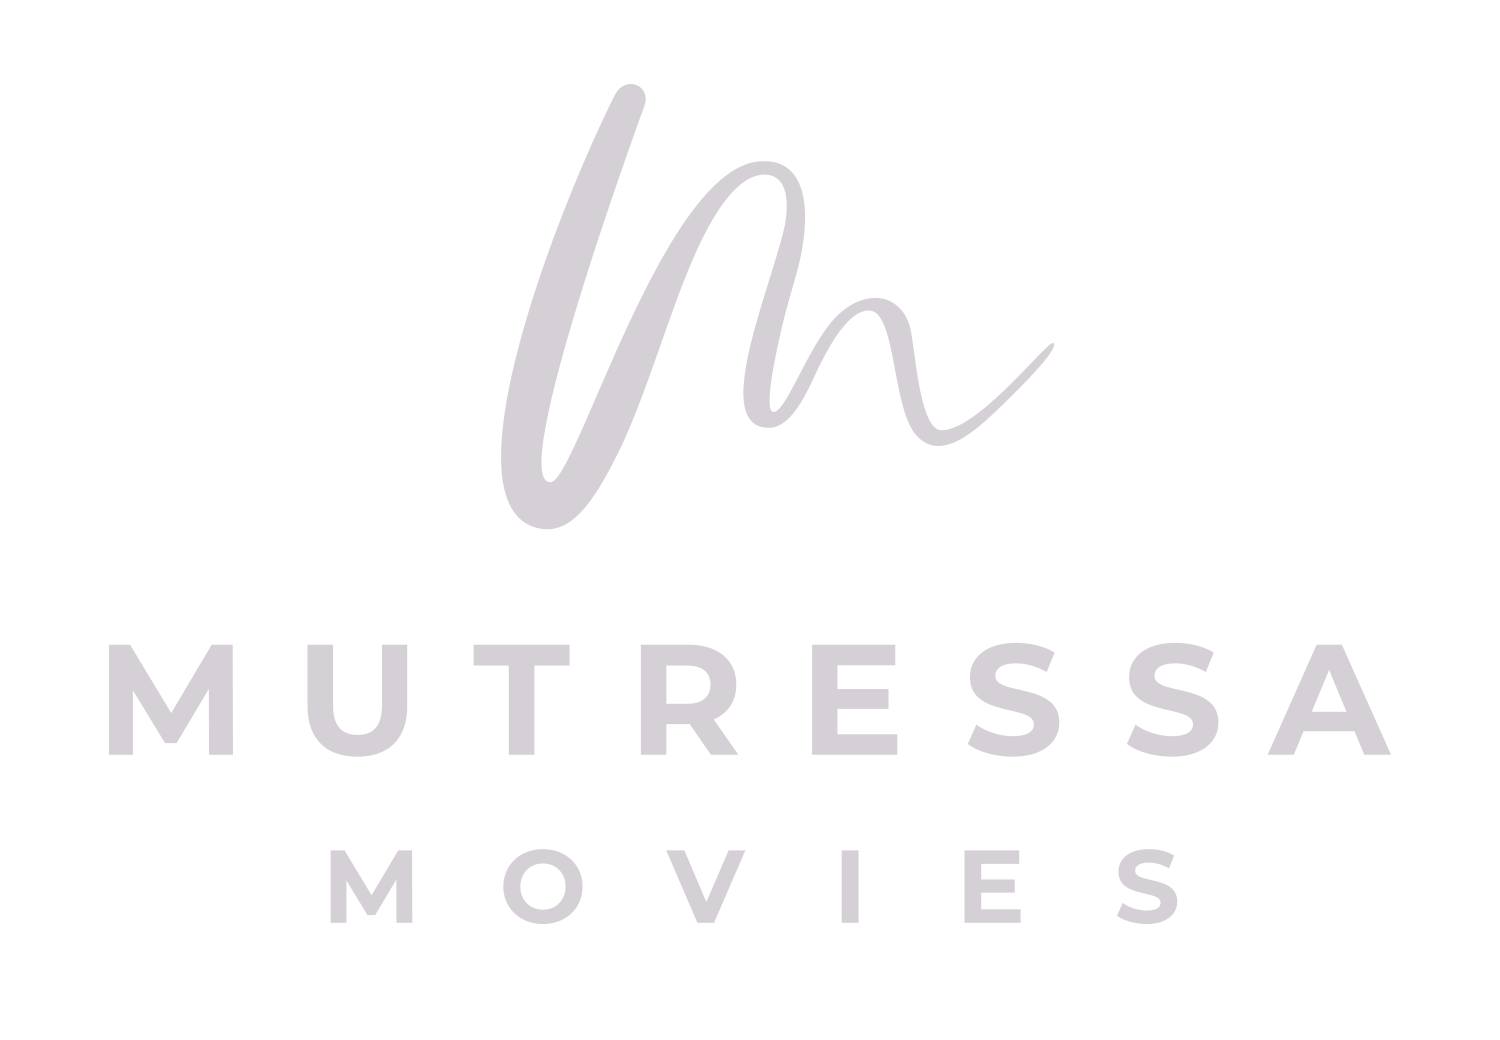 mutressa movies